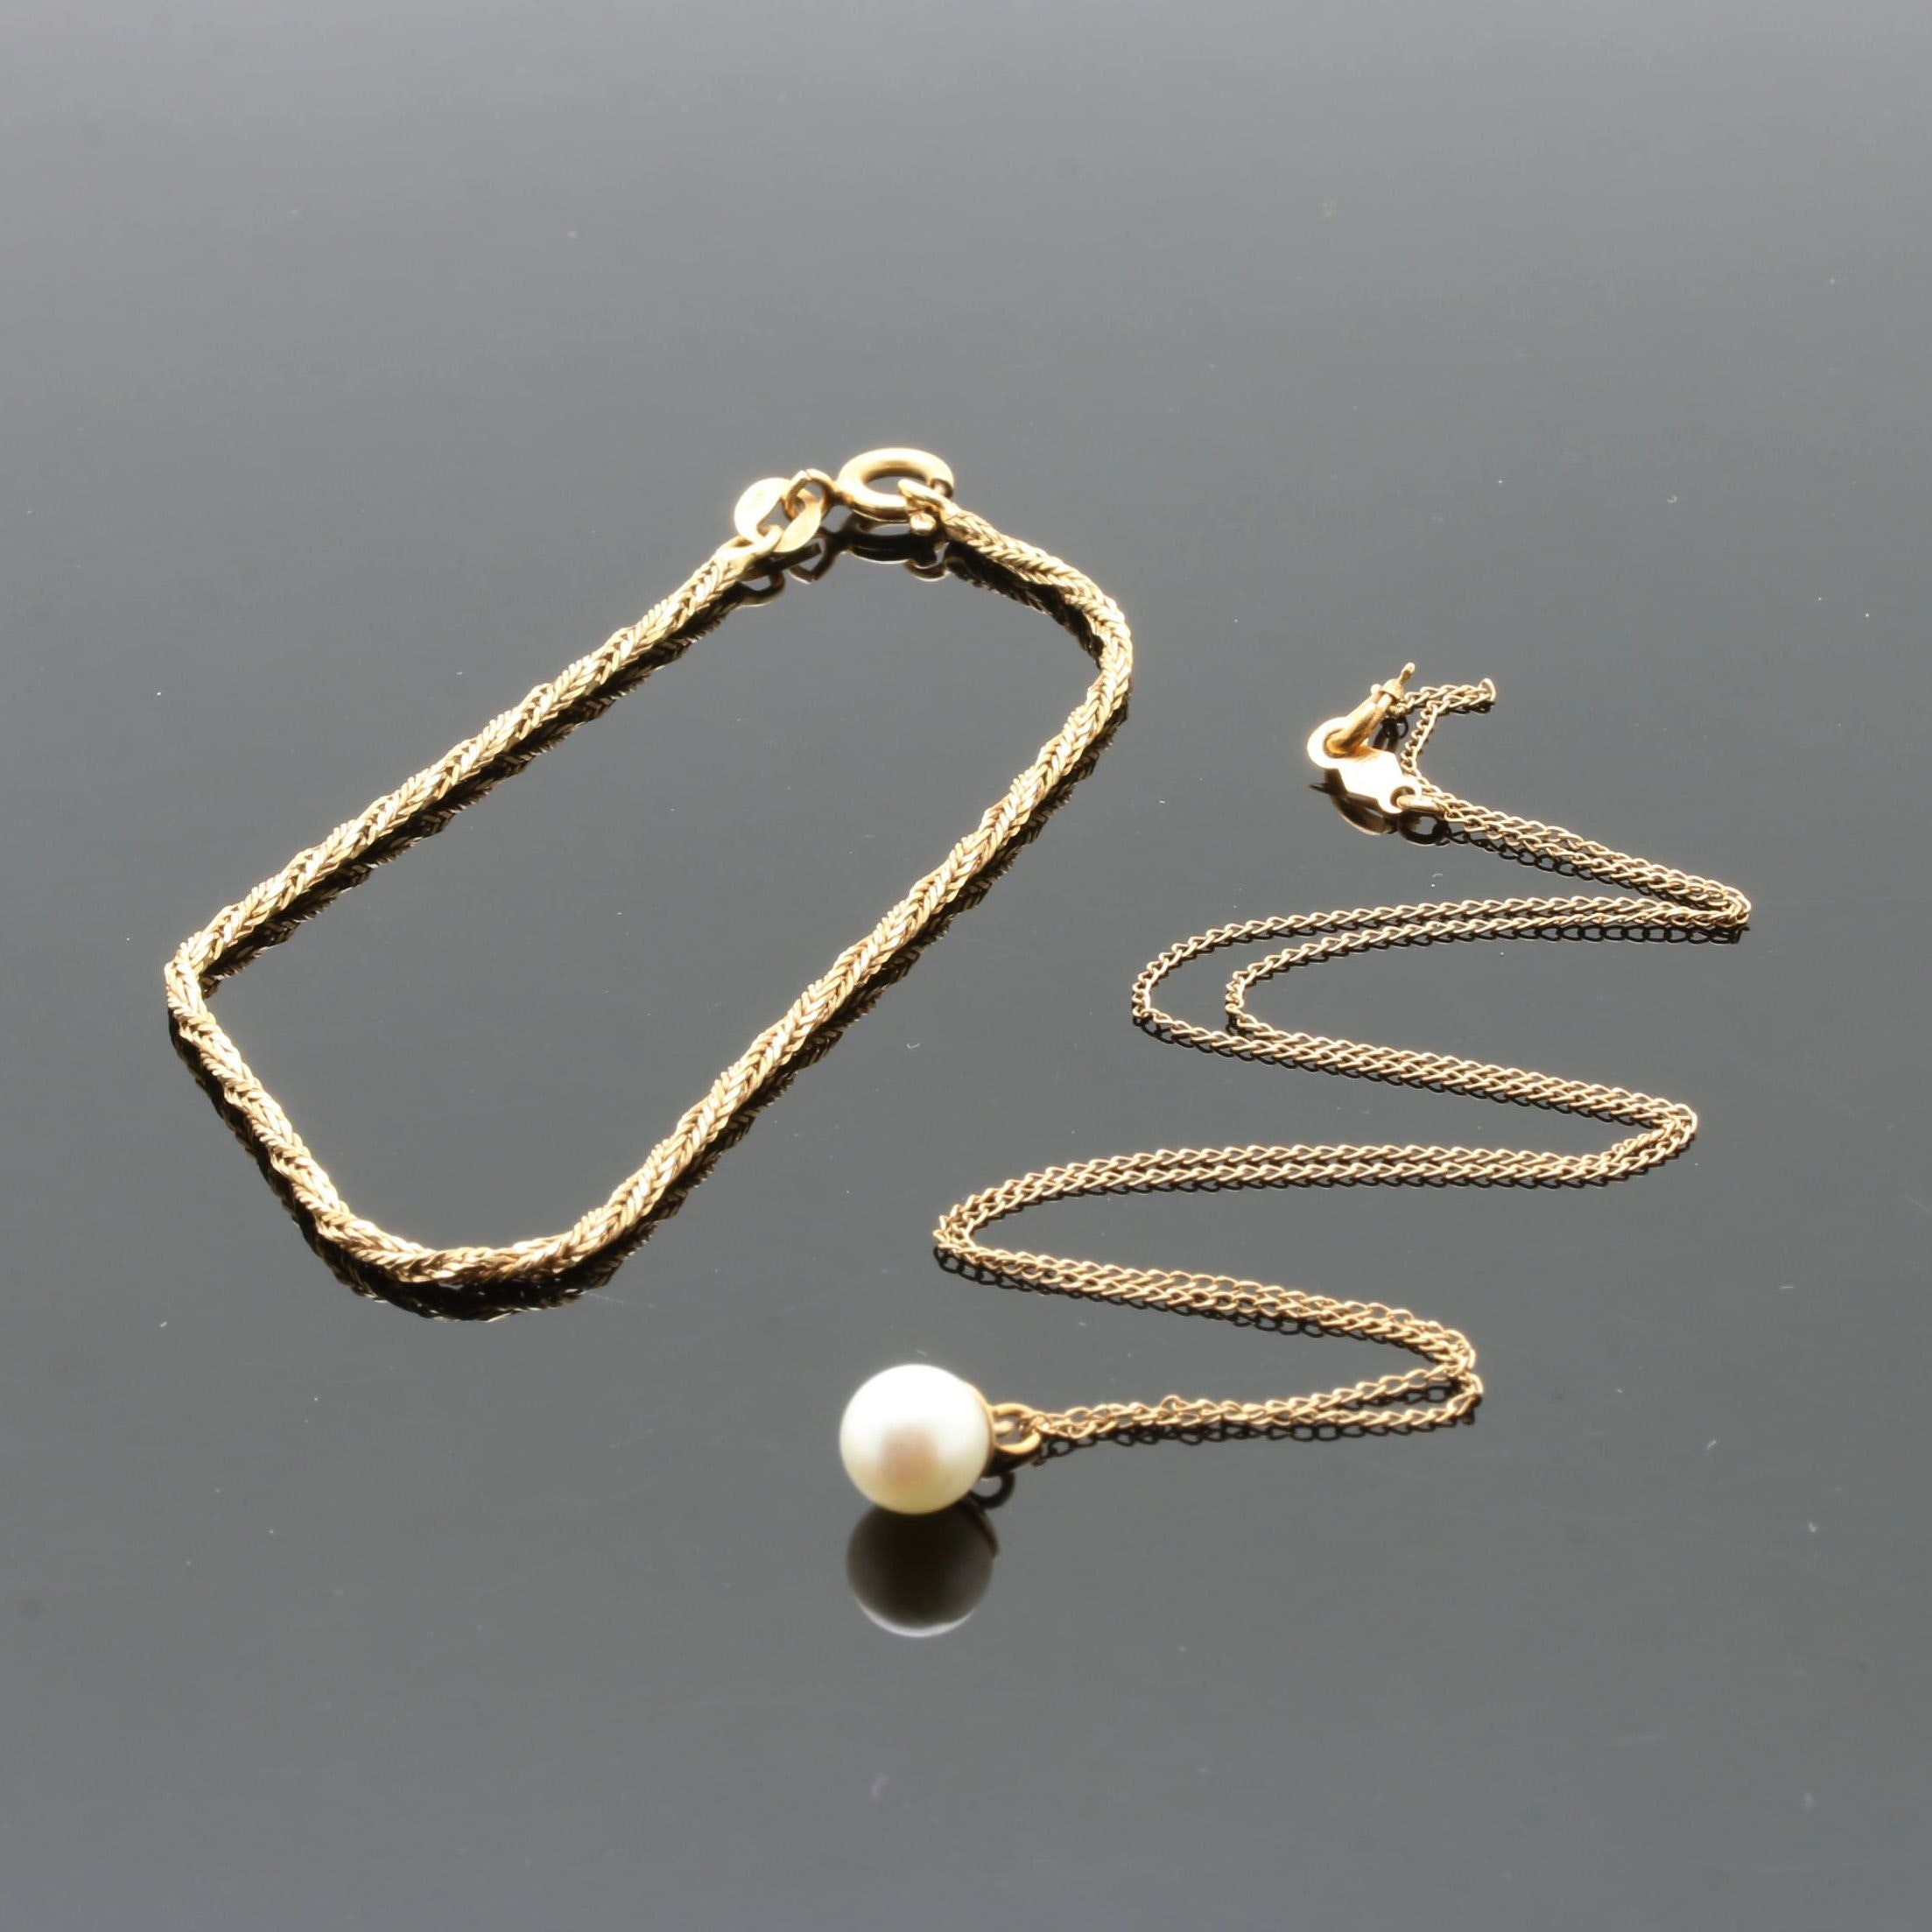 14K Yellow Gold Cultured Pearl Necklace and Rope Chain Bracelet